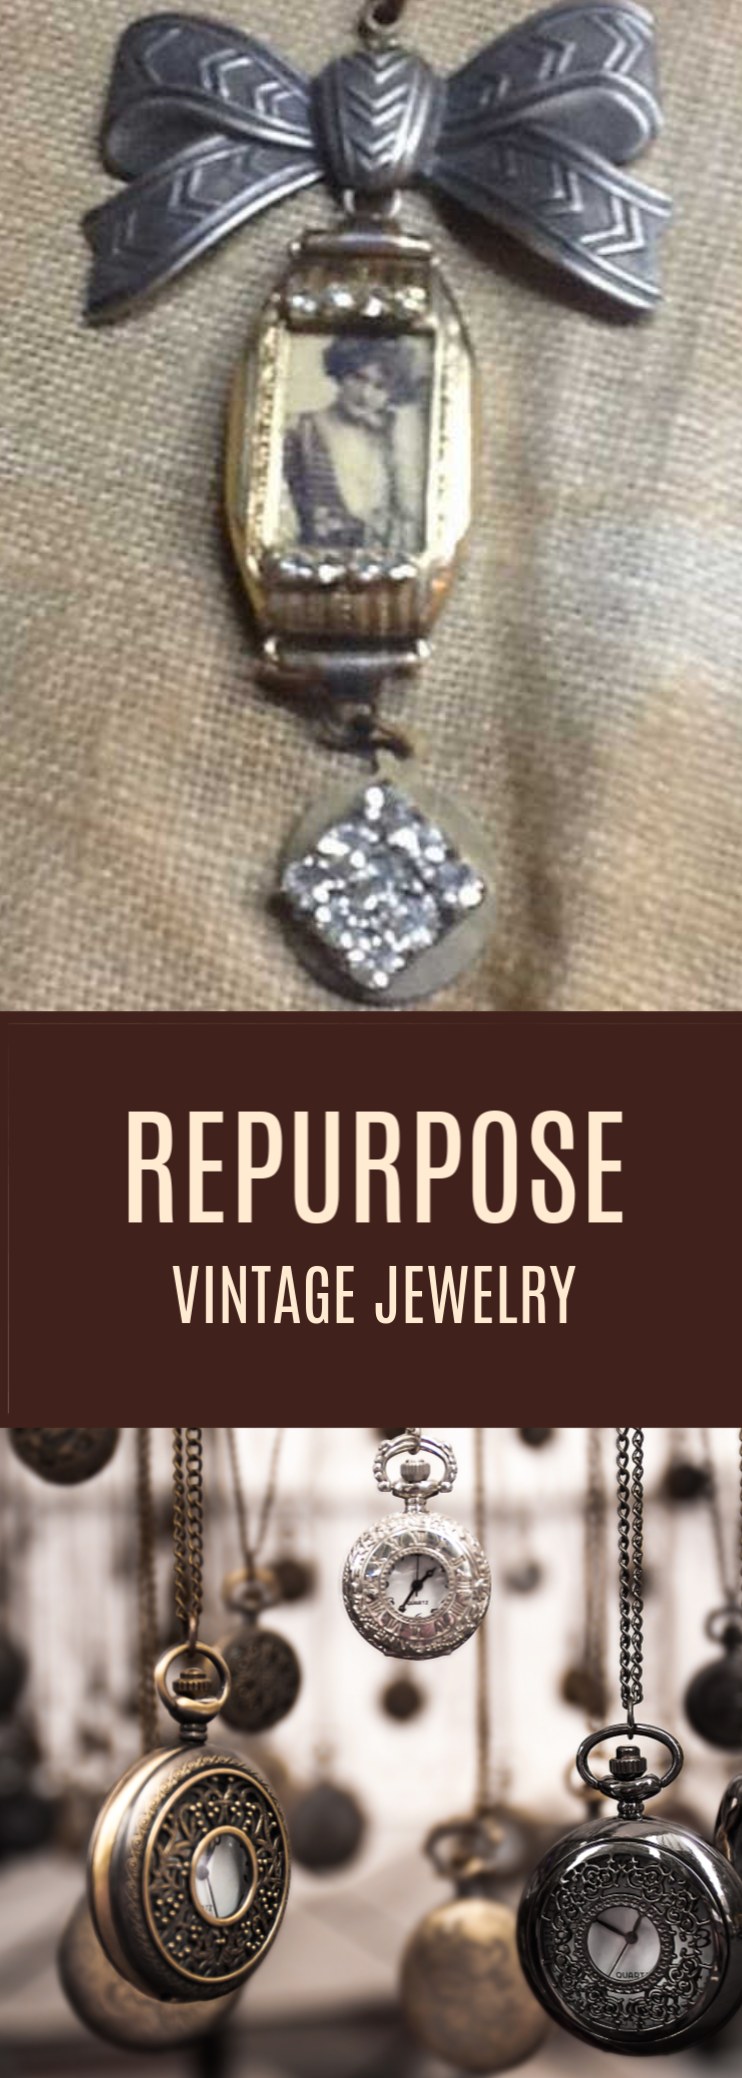 Repurpose Vintage Jewelry